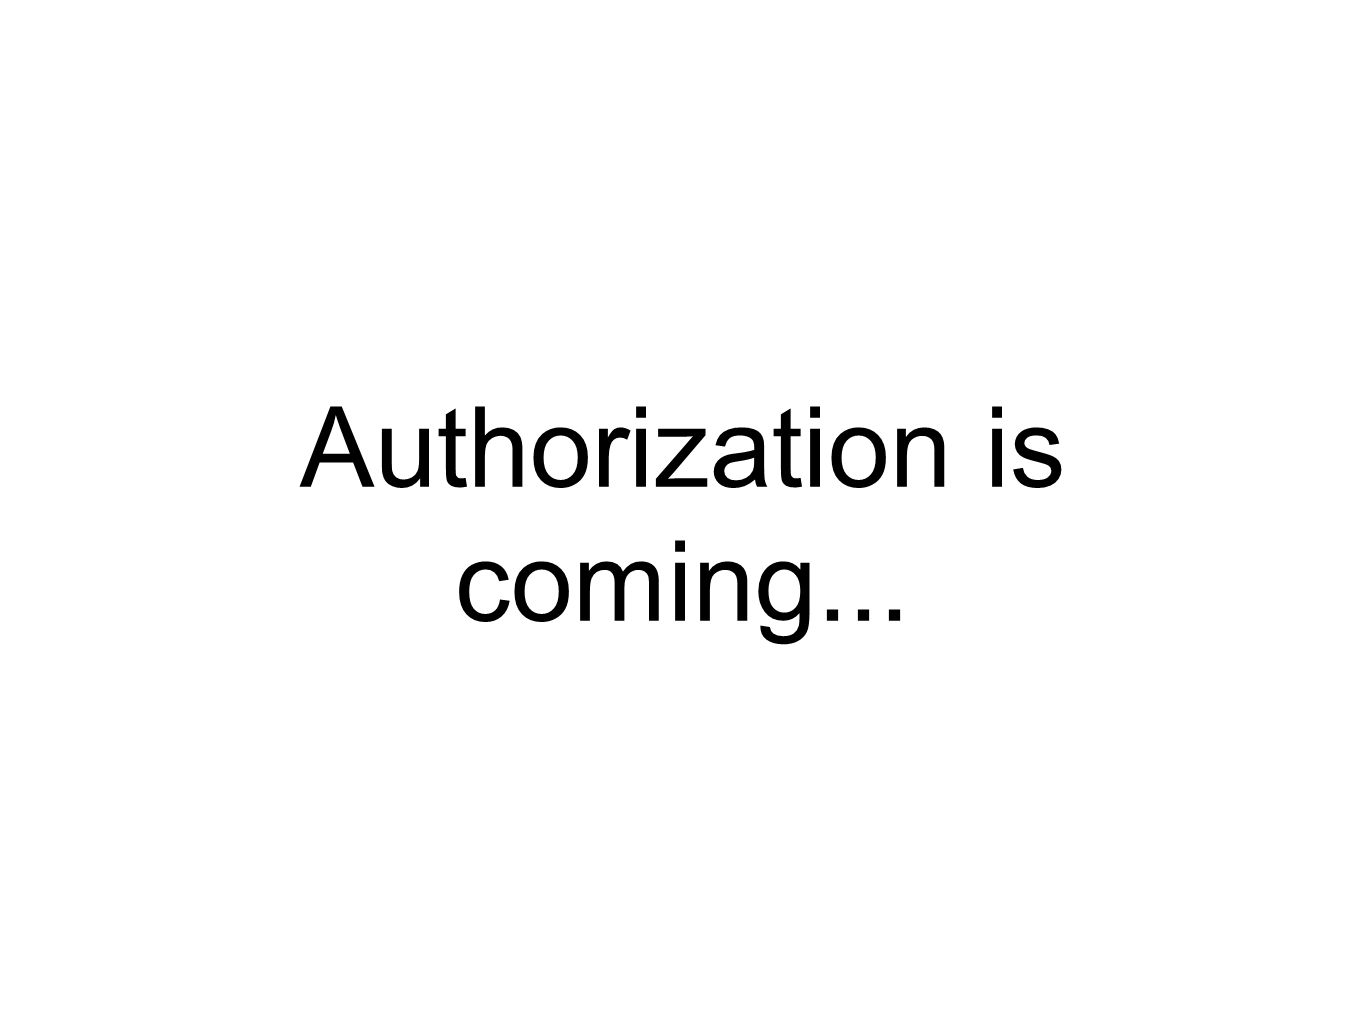 Authorization is coming...